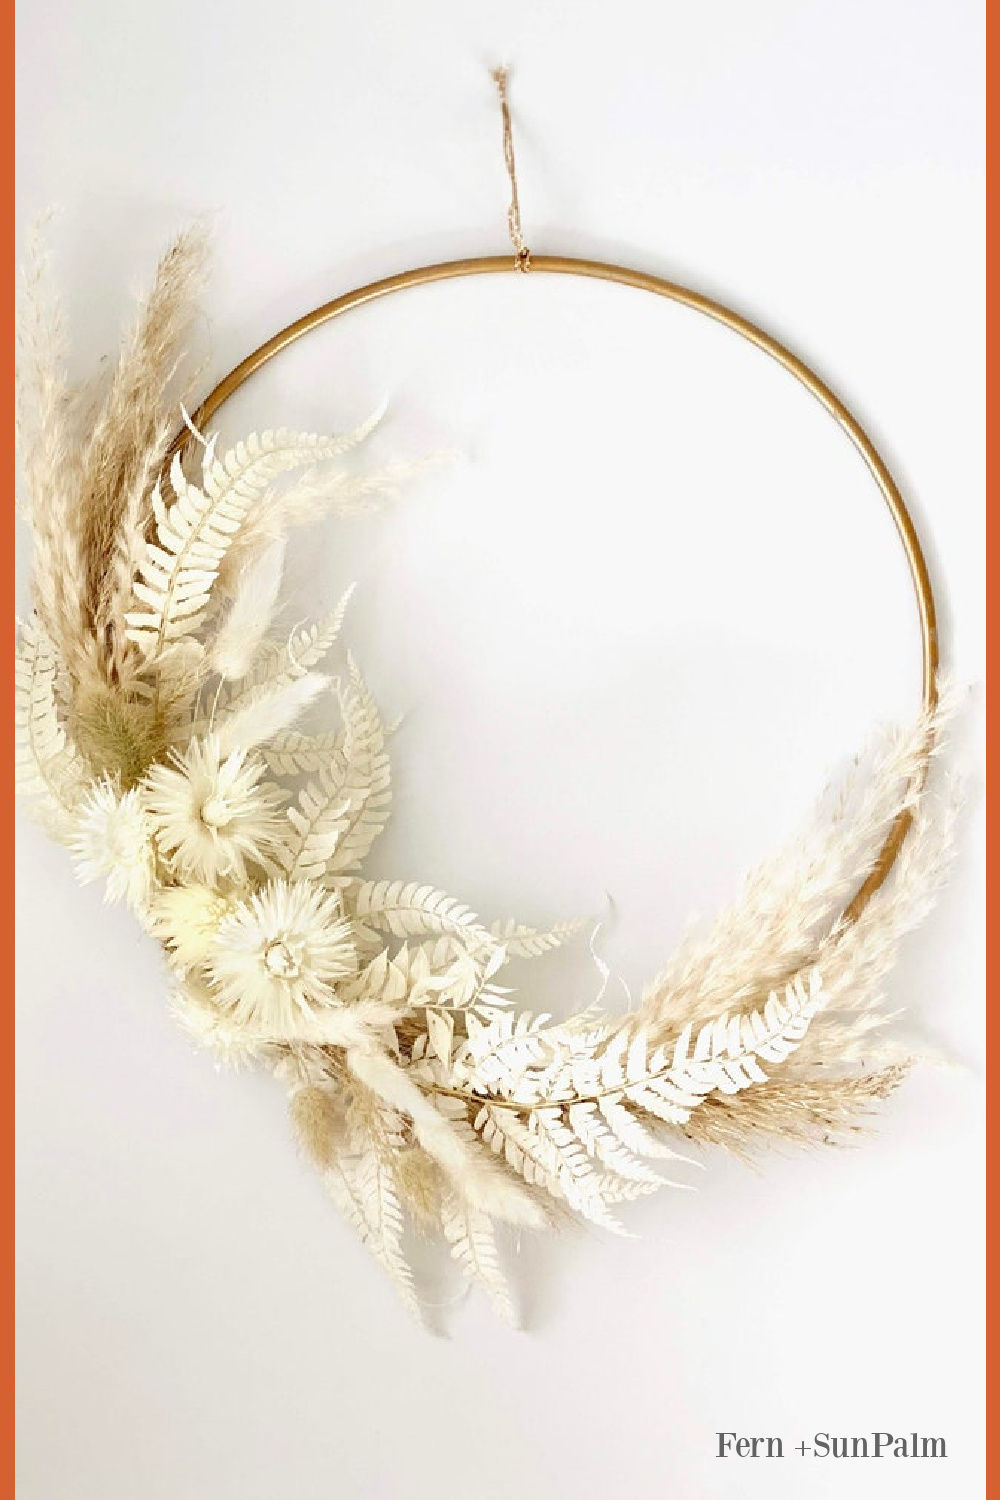 Fall Pampas Grass Wreath with everlasting dried blooms - Fern and Sun Palm. #fallfloral #fallwreath